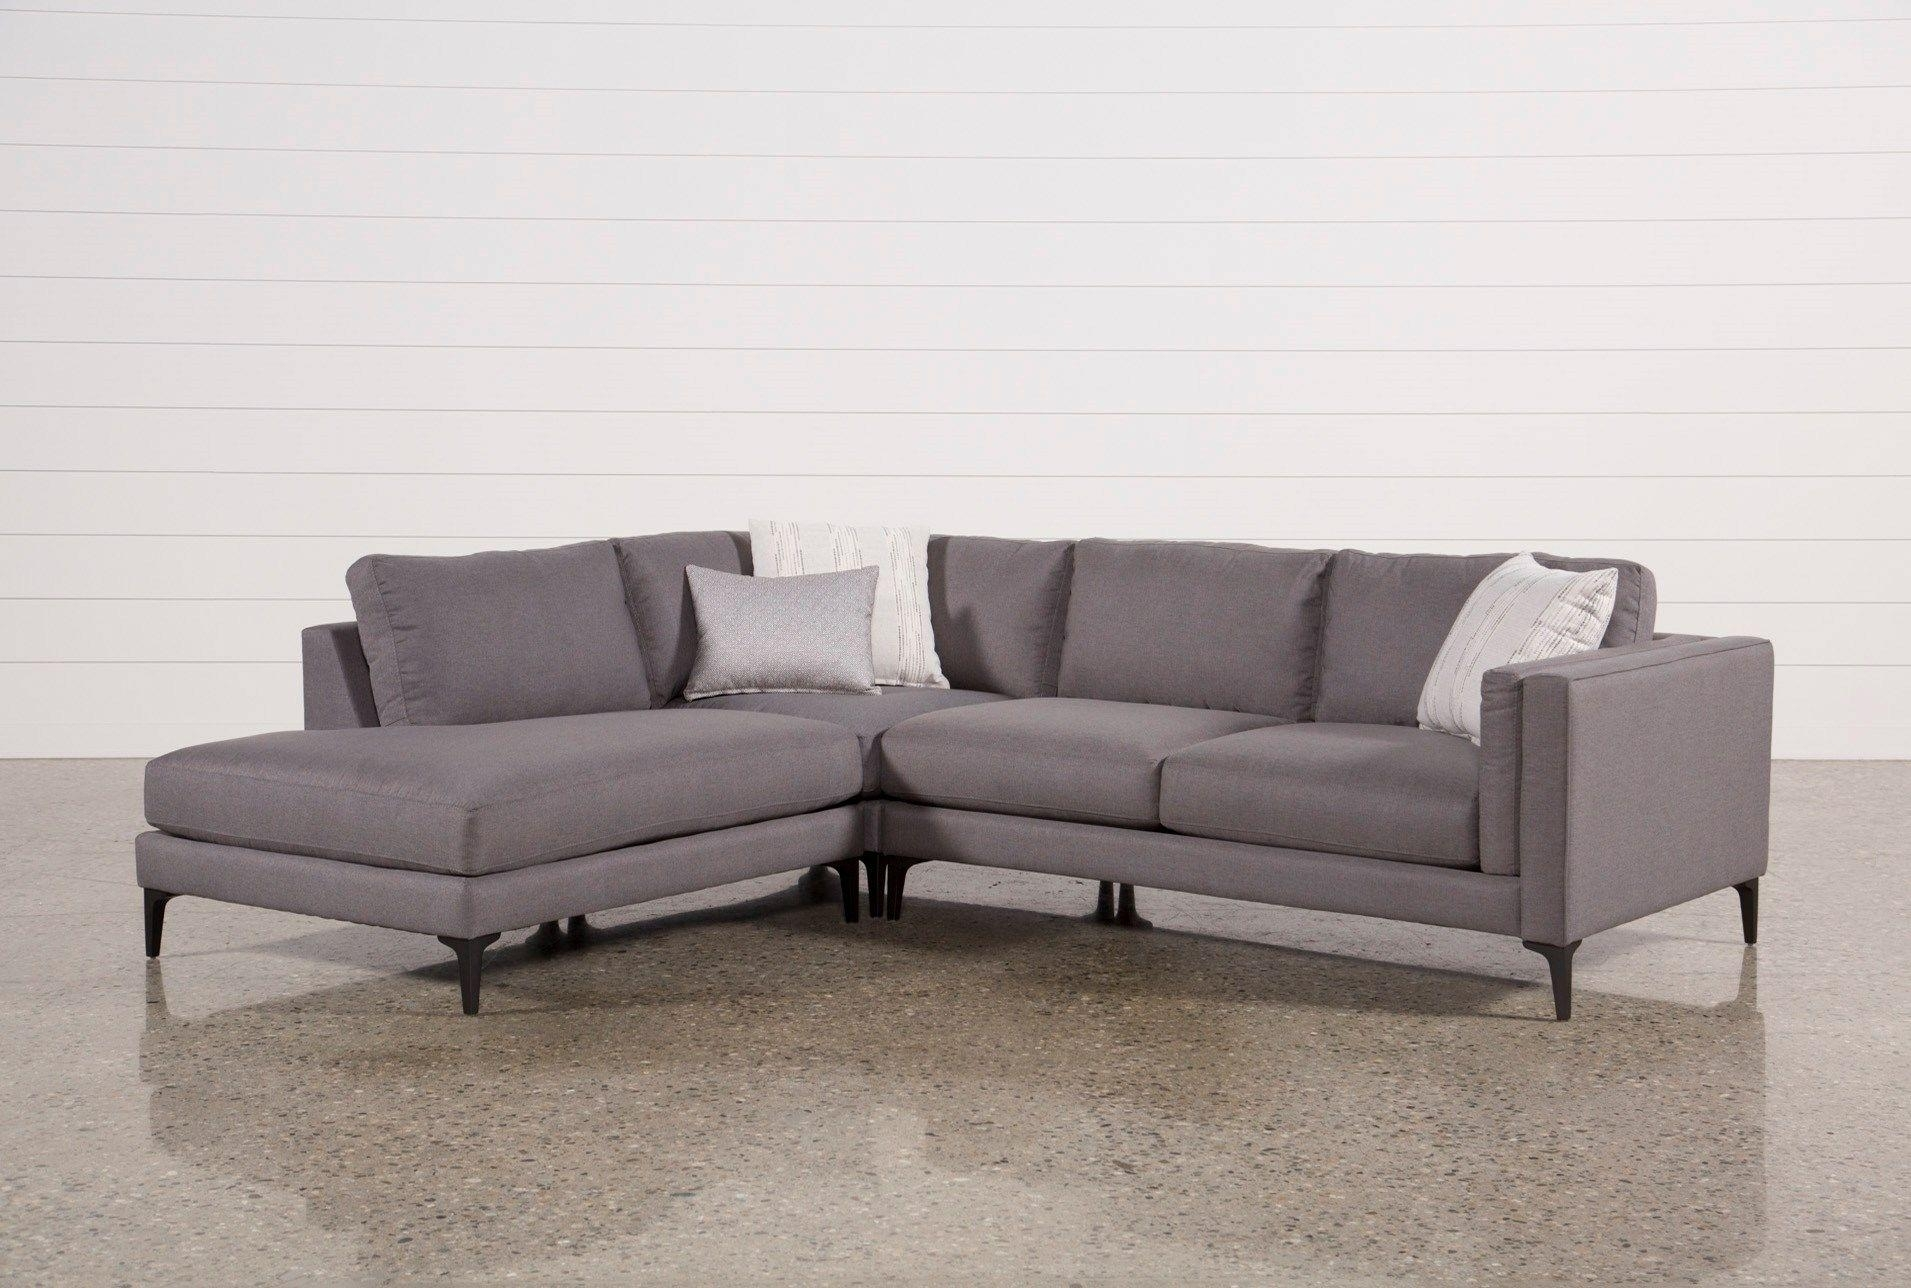 Furniture : Sectional Couch Costco New Alder 4 Piece Sectional Sofas With Regard To Virginia Beach Sectional Sofas (View 9 of 10)